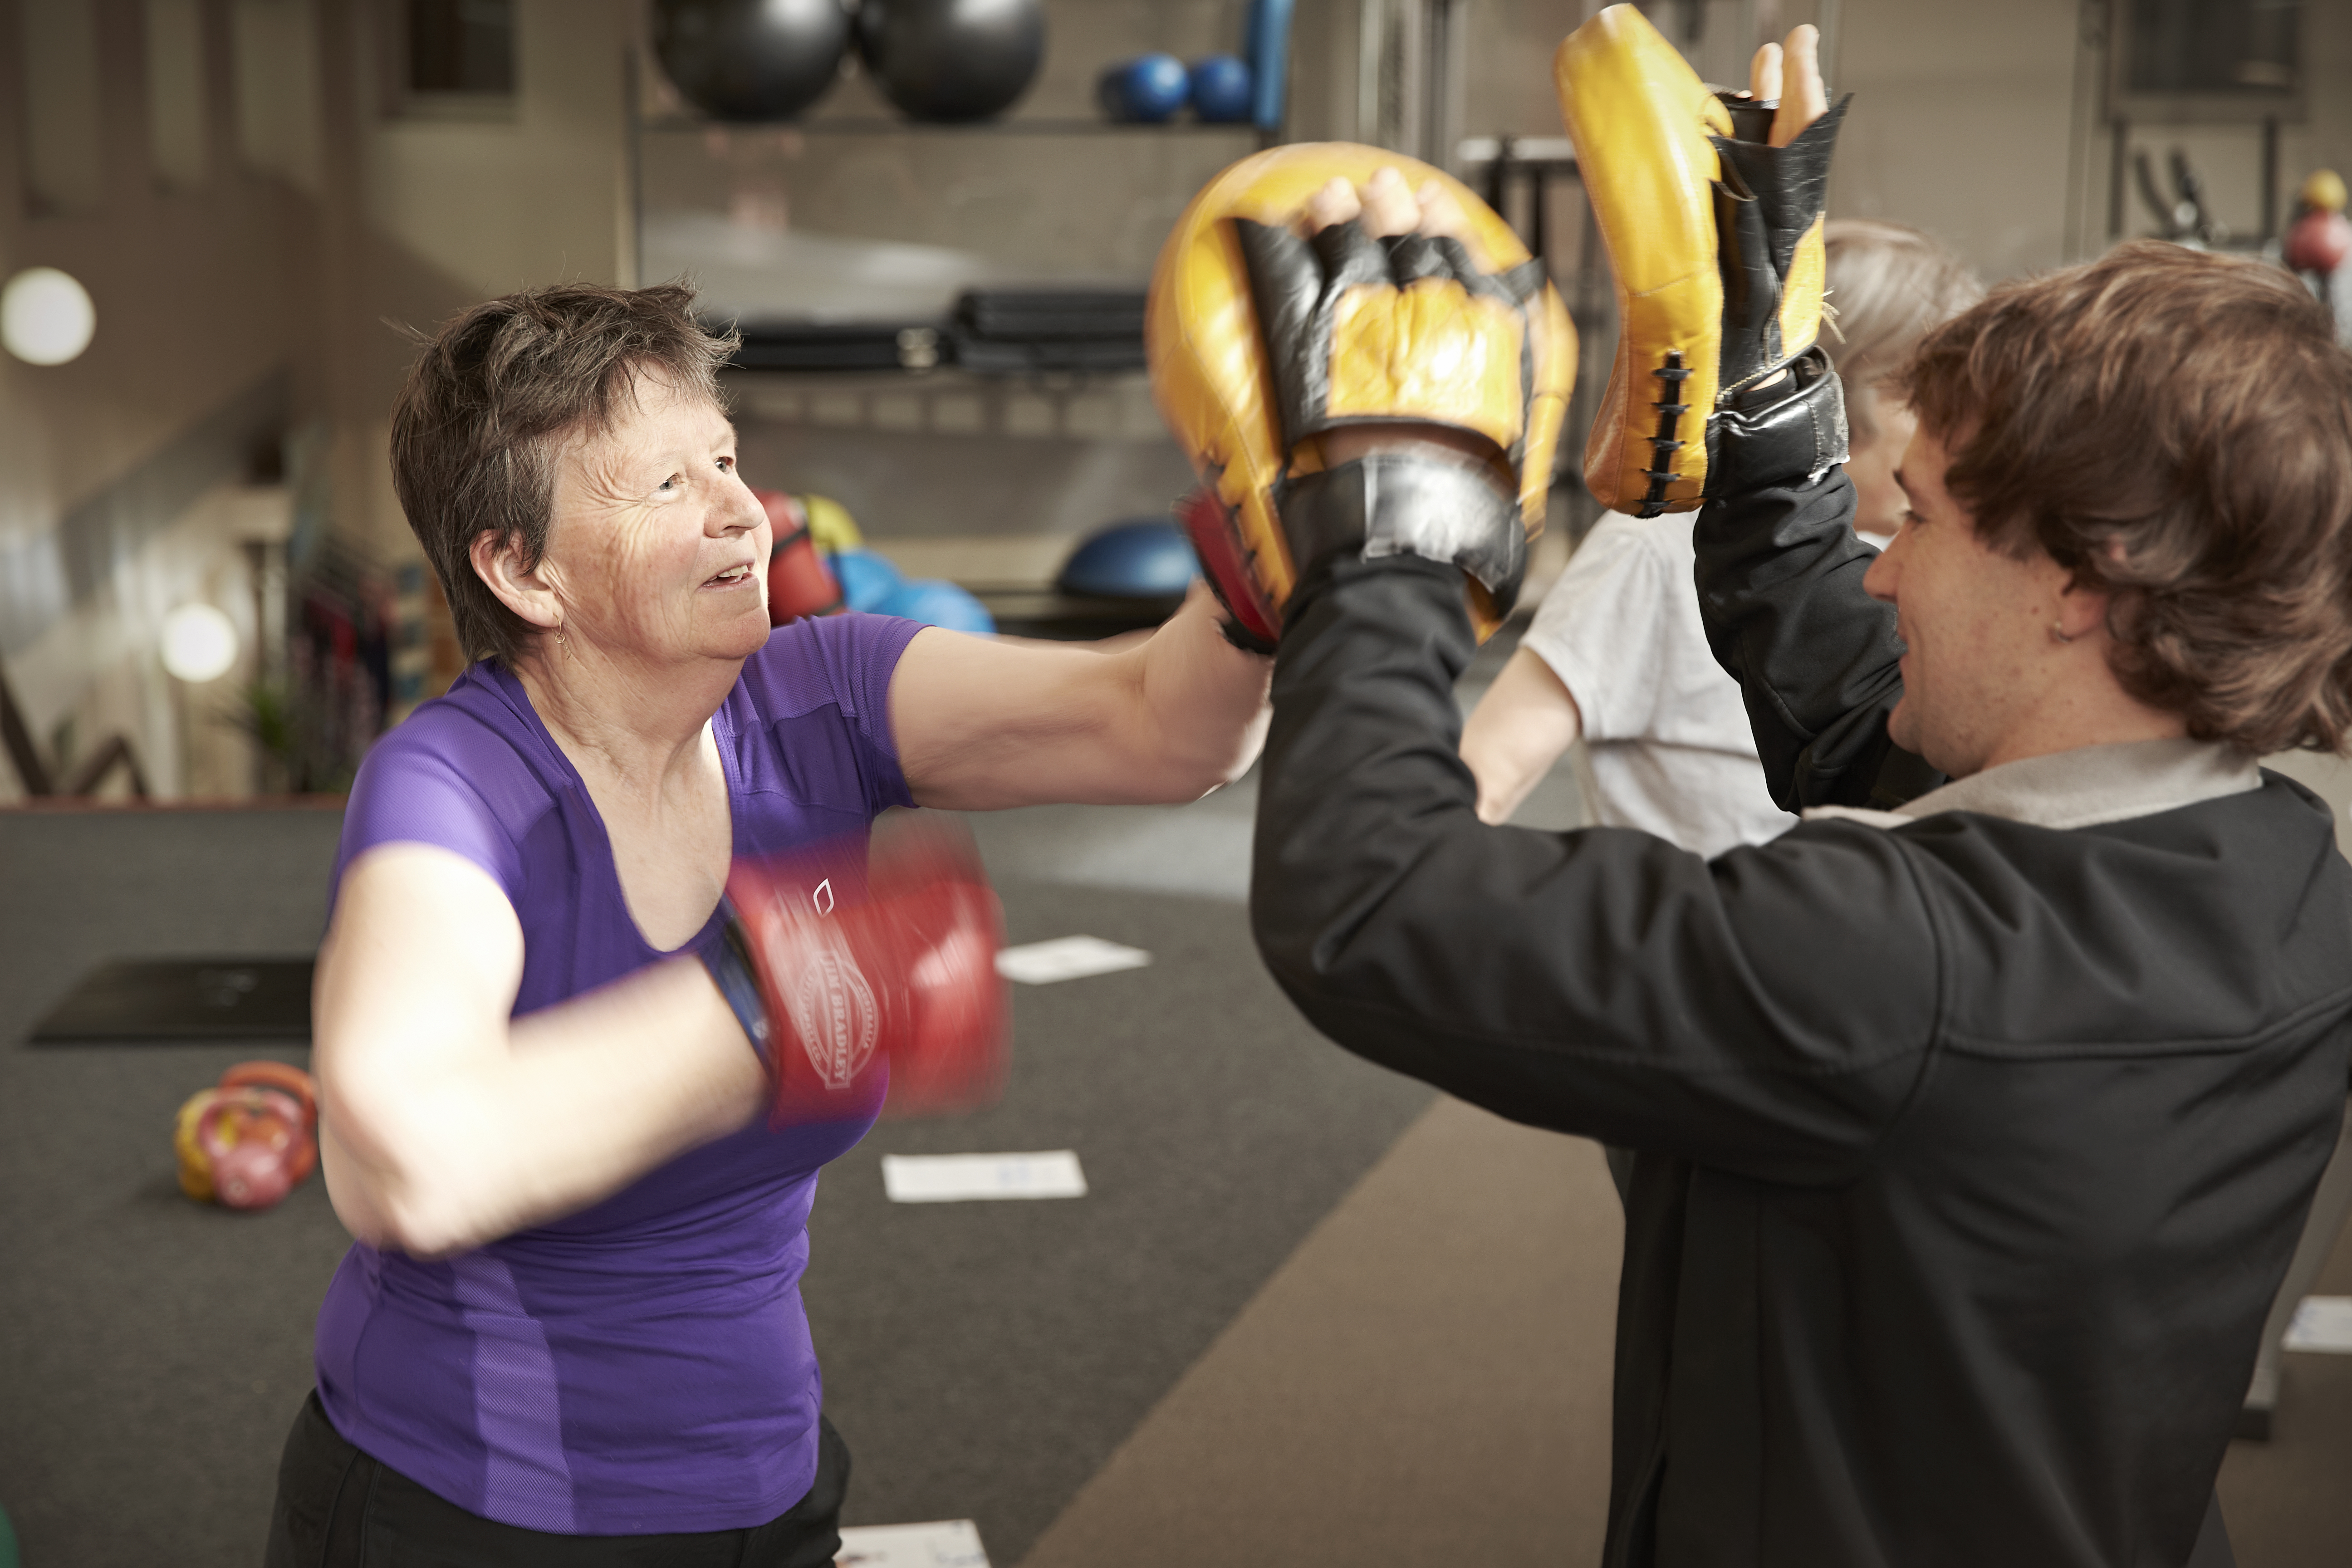 The Health Club has group fitness classes or exercise one on one with a personal trainer.